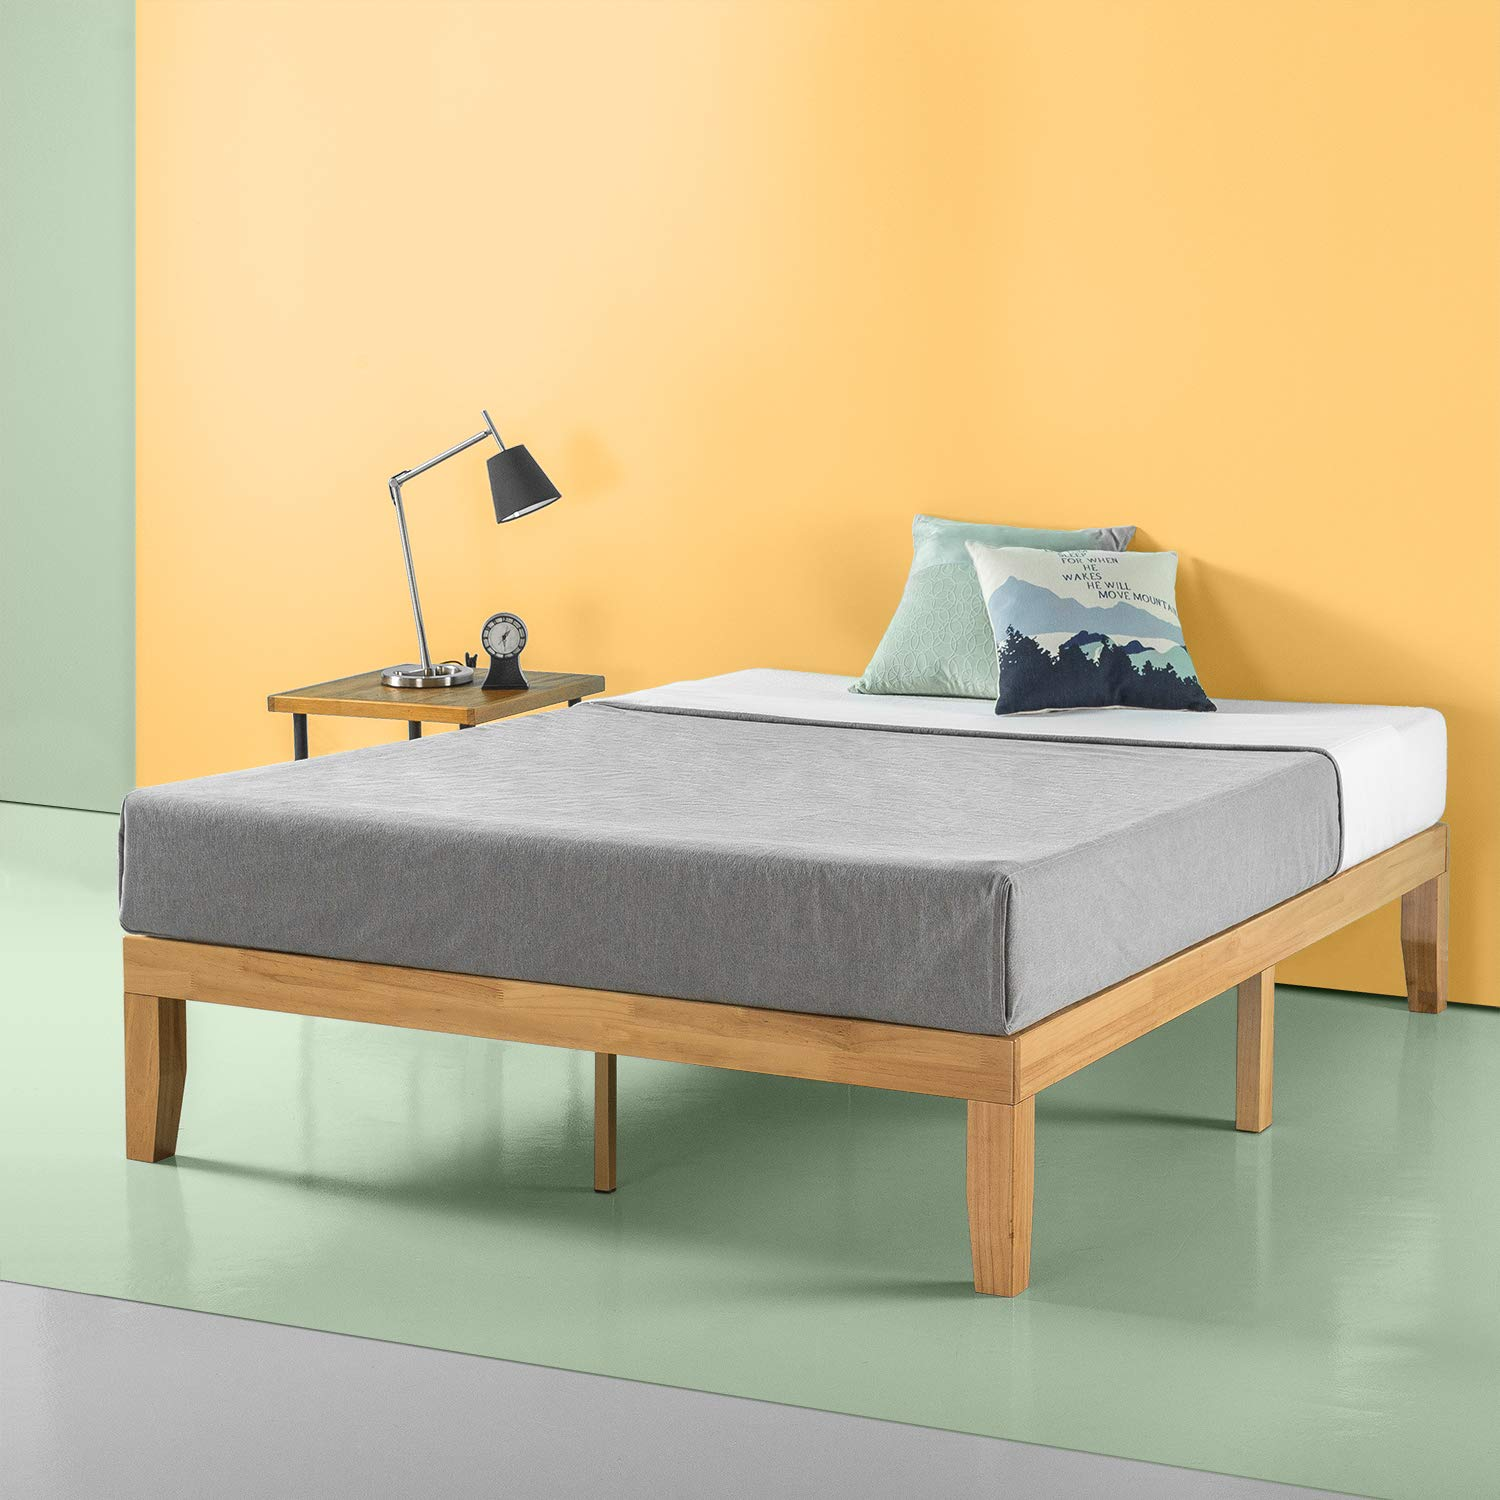 Zinus Moiz 14 Inch Wood Platform Bed / No Box Spring Needed / Wood Slat Support / Natural Finish, Full by Zinus